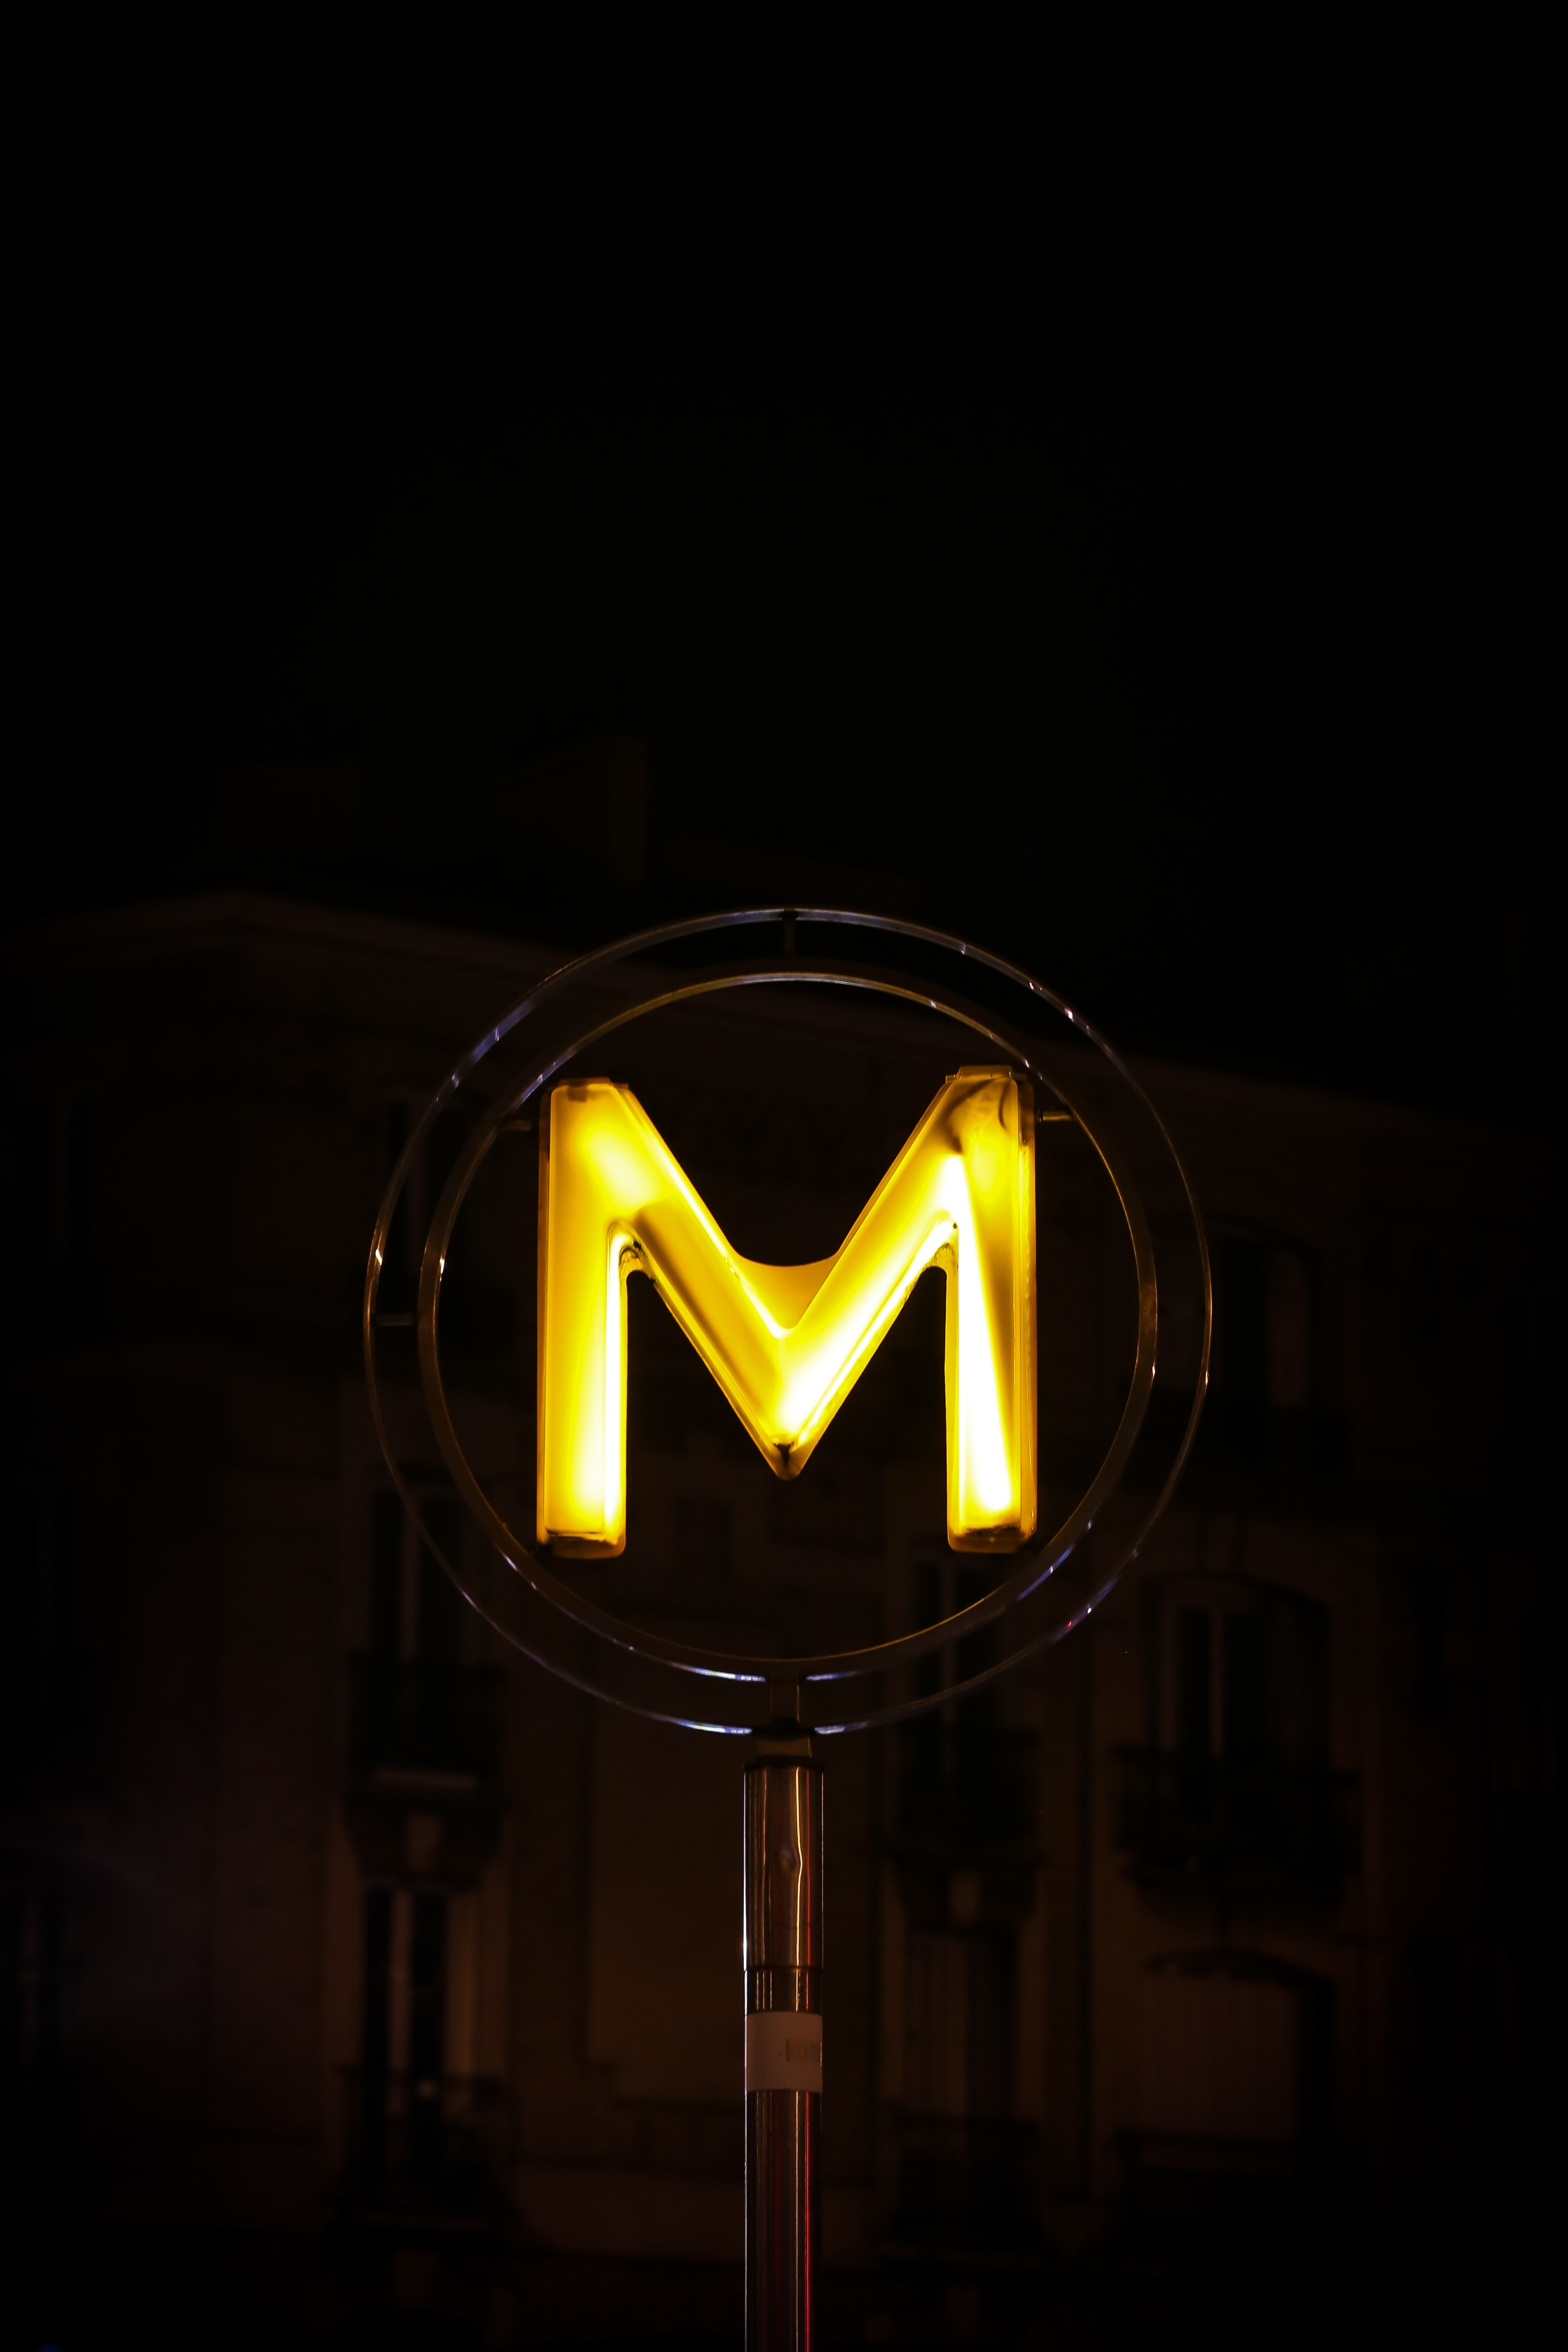 closeup photo of orange M neon signage